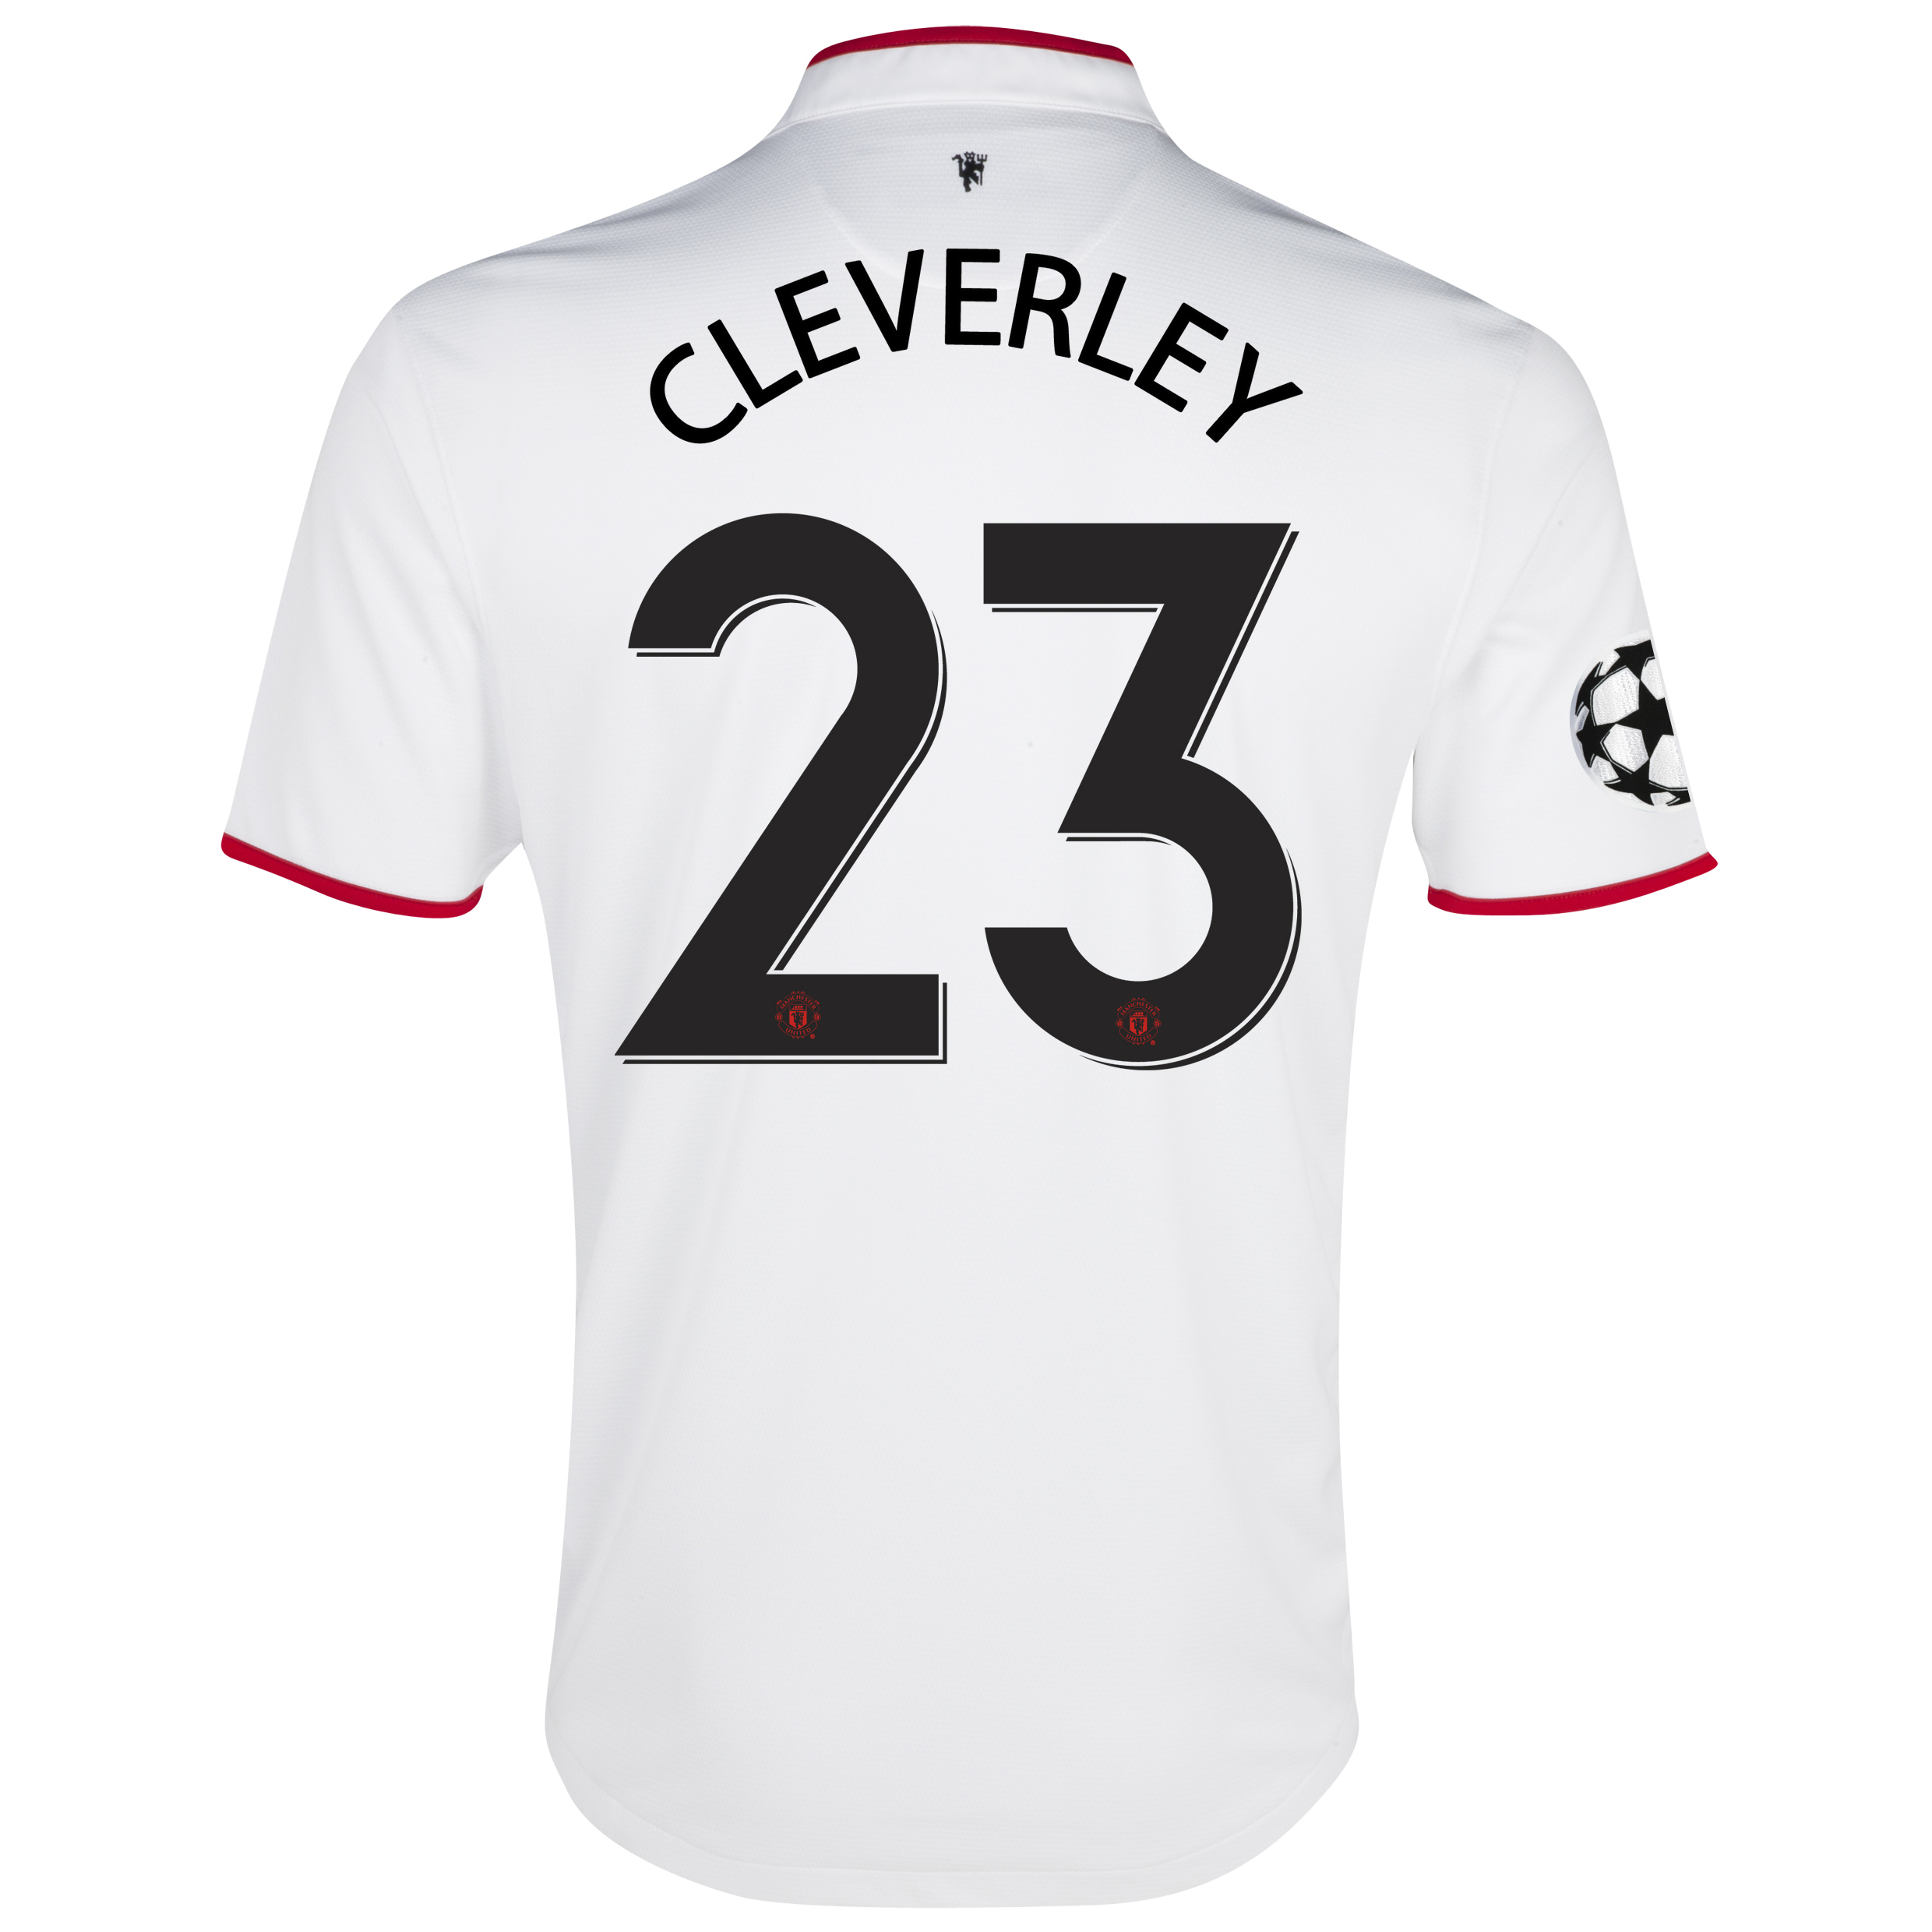 Manchester United UEFA Champions League Away Shirt 2012/13 with Cleverley 23 printing